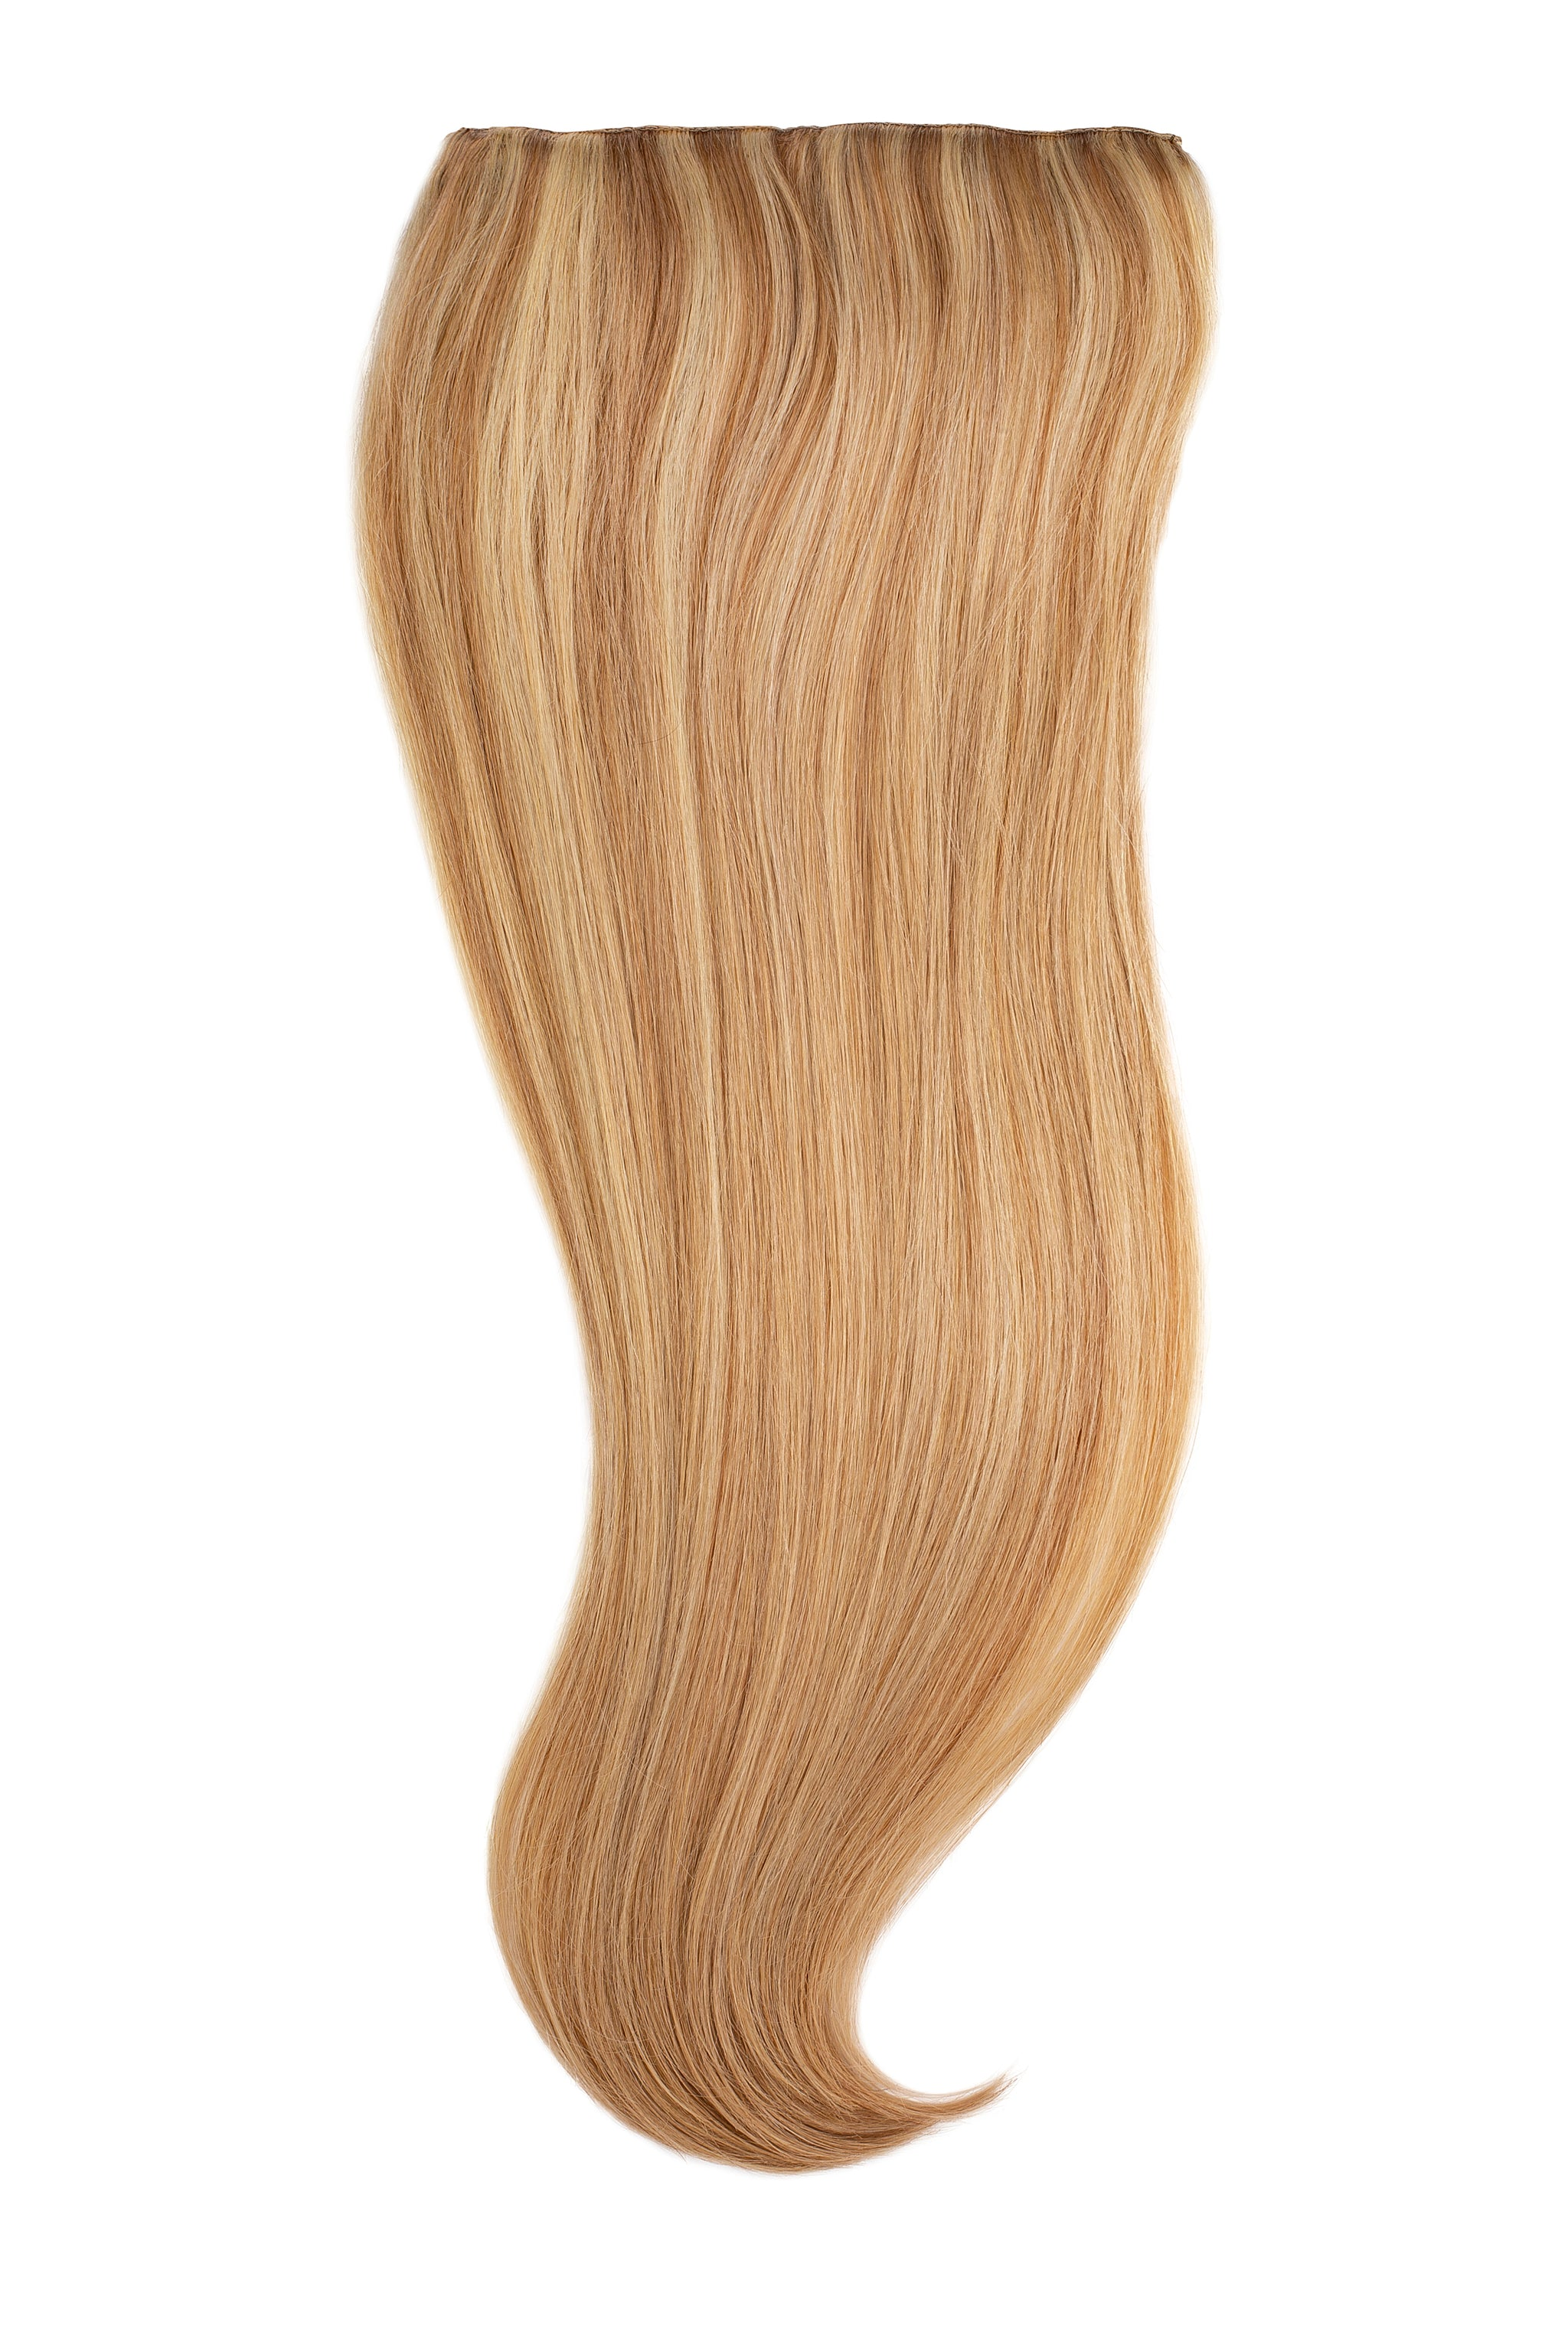 Honey Blonde Highlights Clip In Hair Extensions